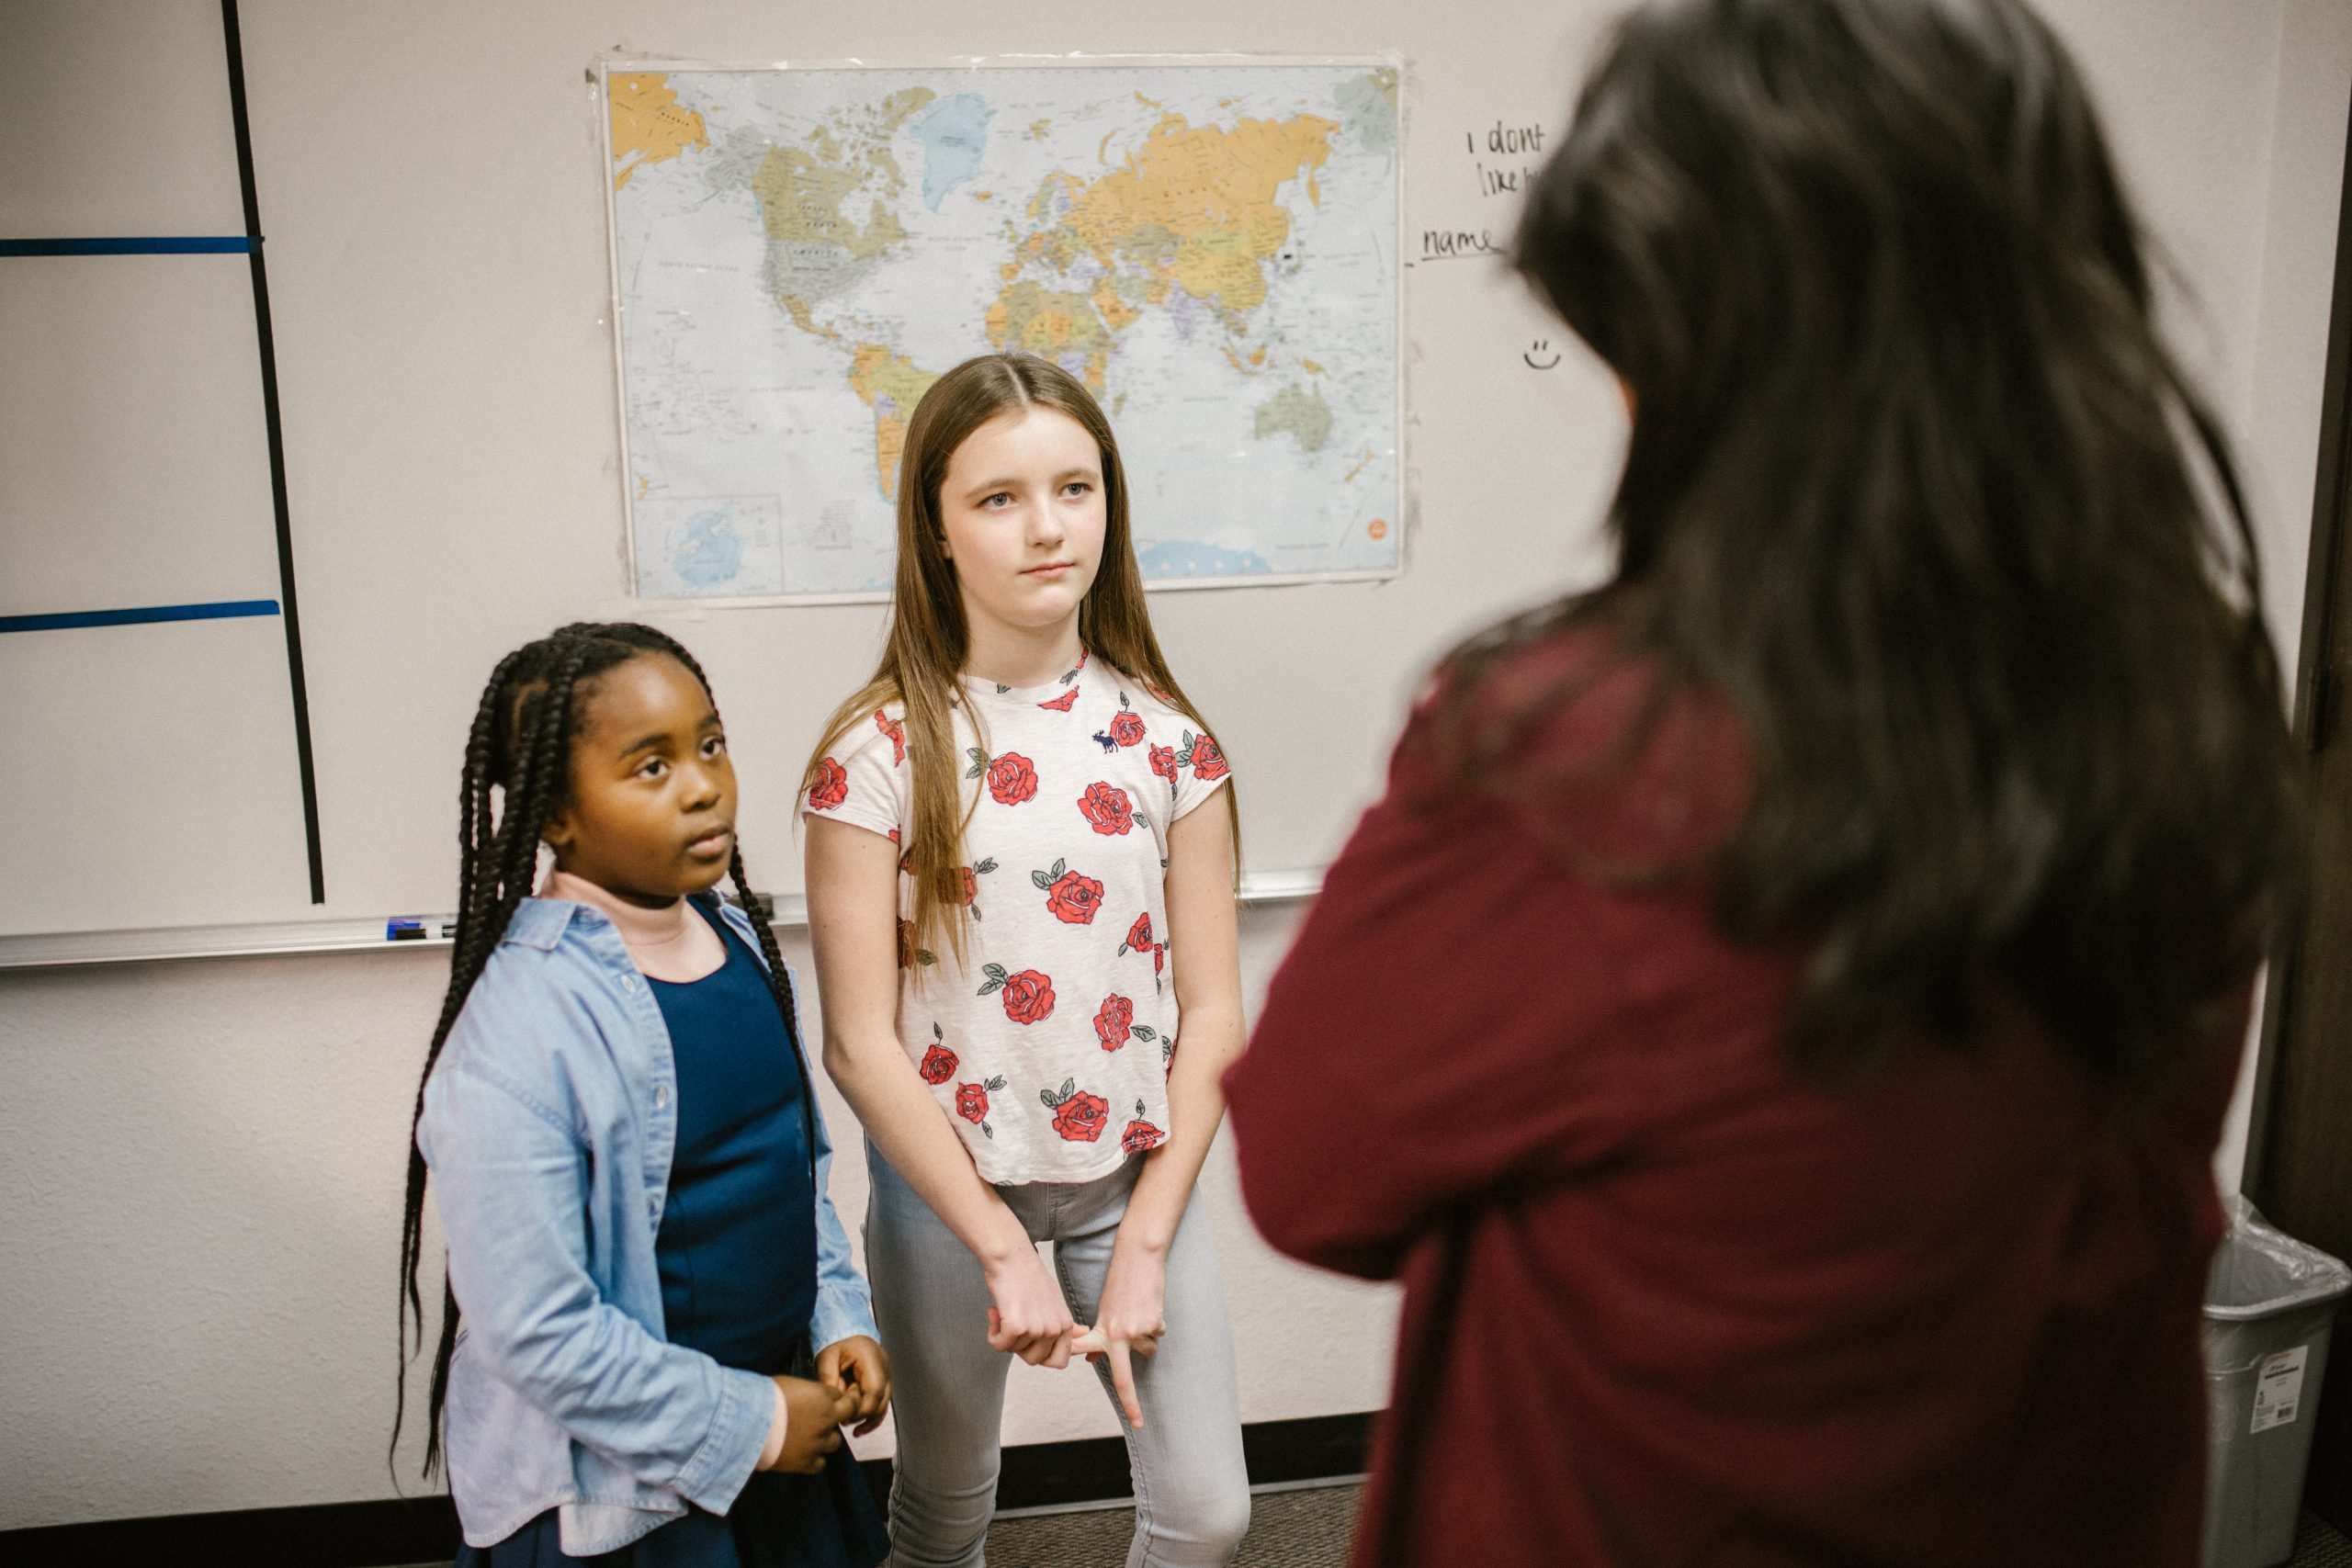 Two young students speak to a teacher